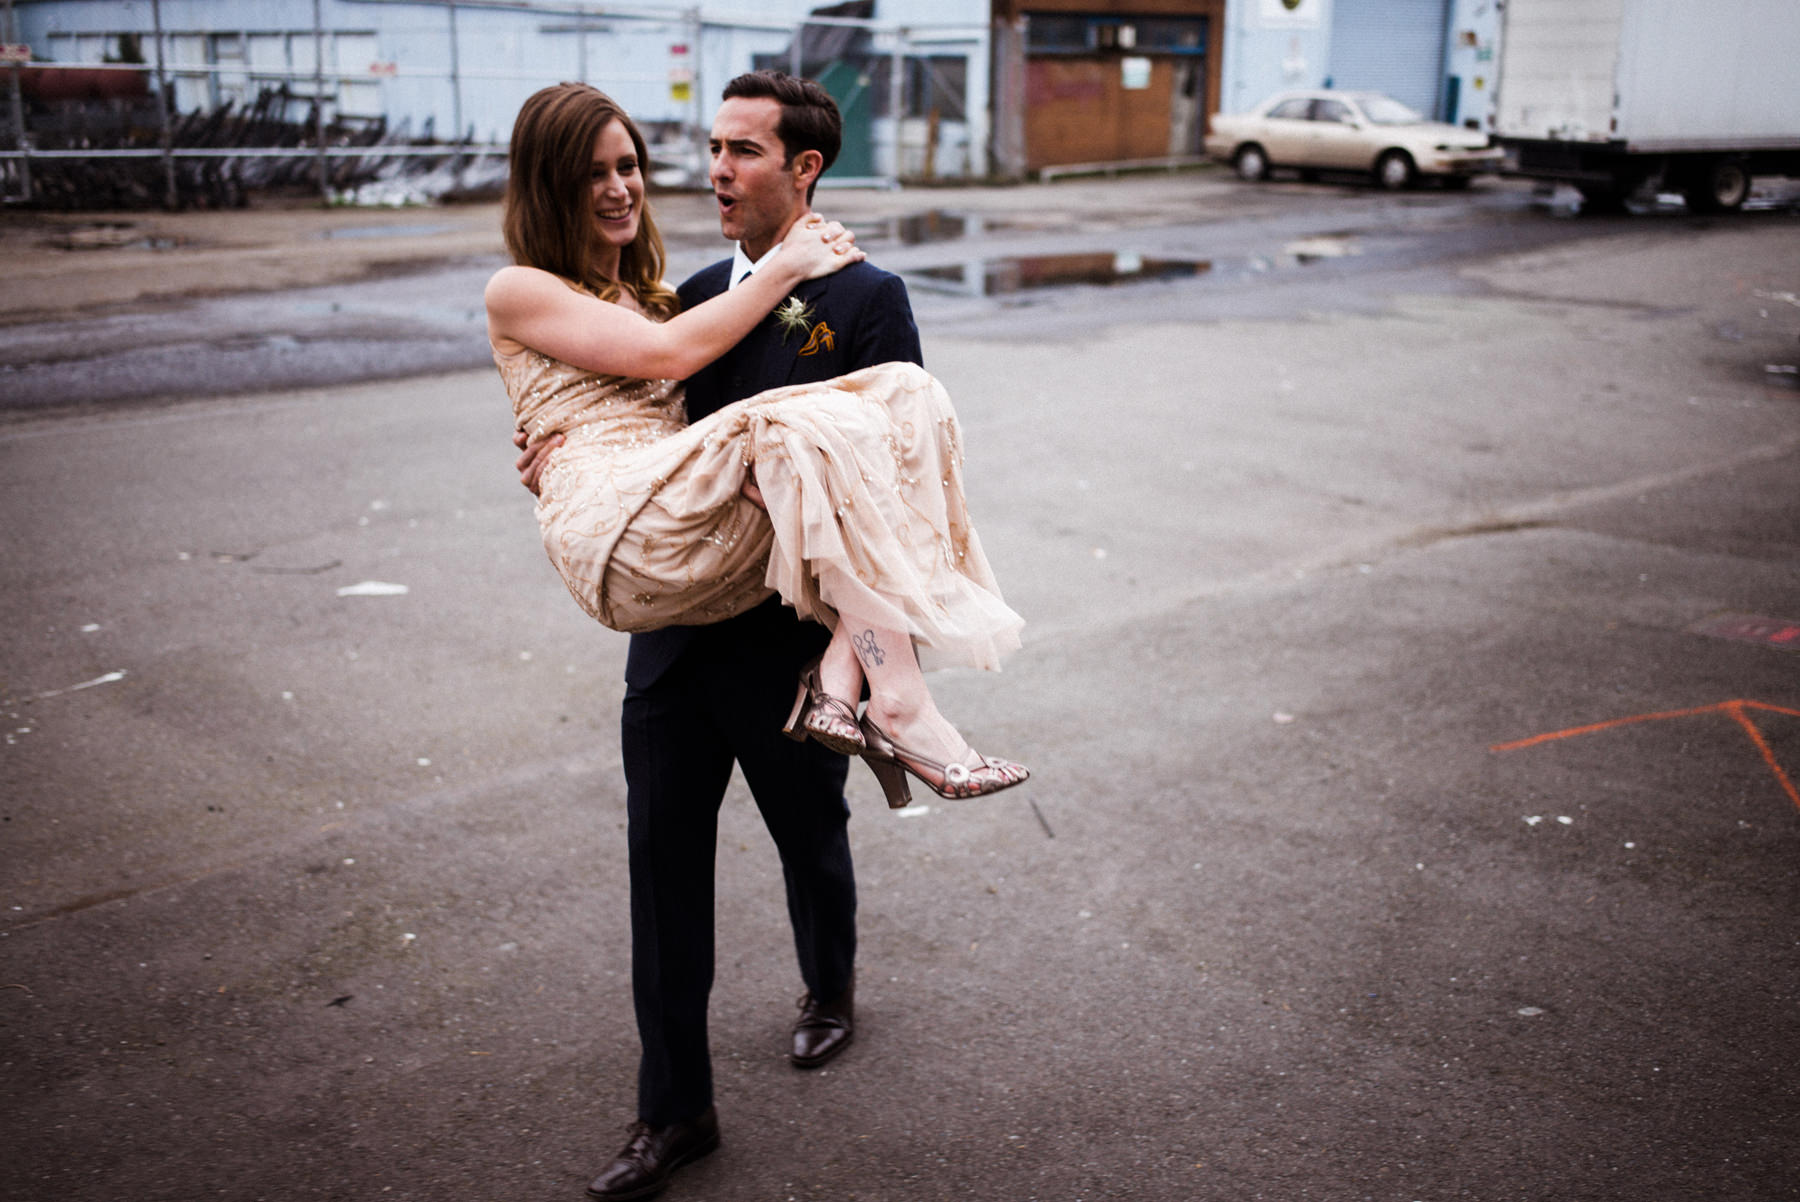 058-groom-carrying-his-bride-through-a-parking-lot-near-sodo-seattle.jpg